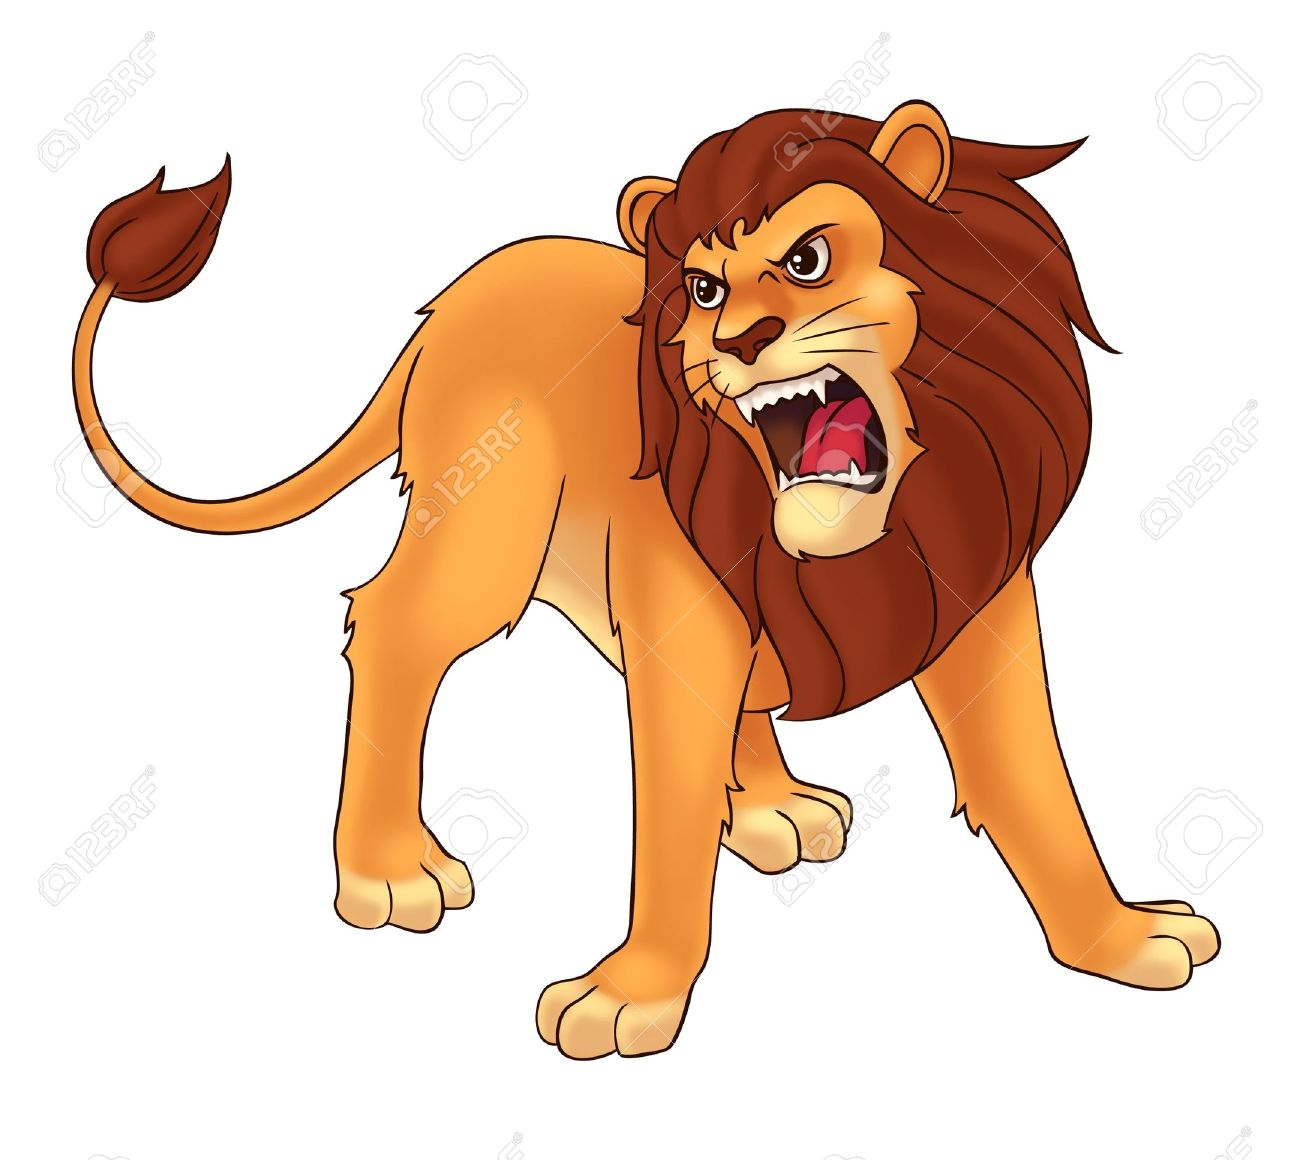 Animated roaring lion clipart.